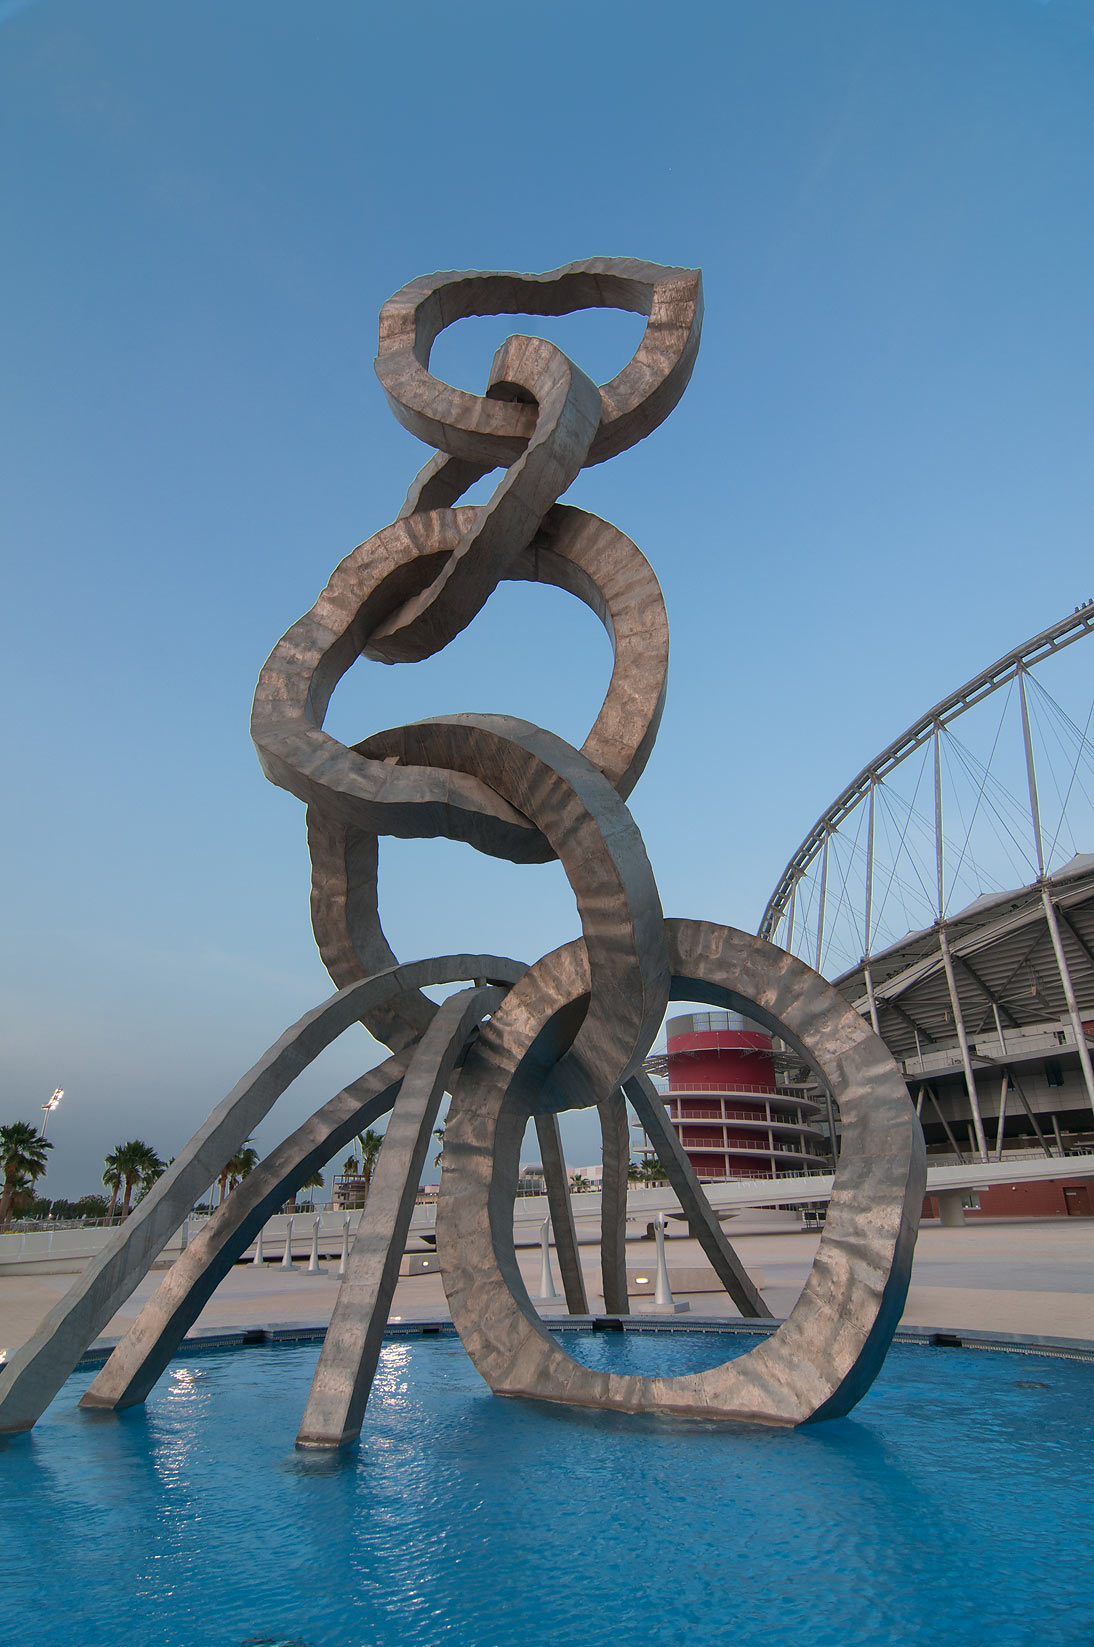 Olympic rings sculpture by Ahmed Al Bahrani in...a stadium in Aspire Zone. Doha, Qatar